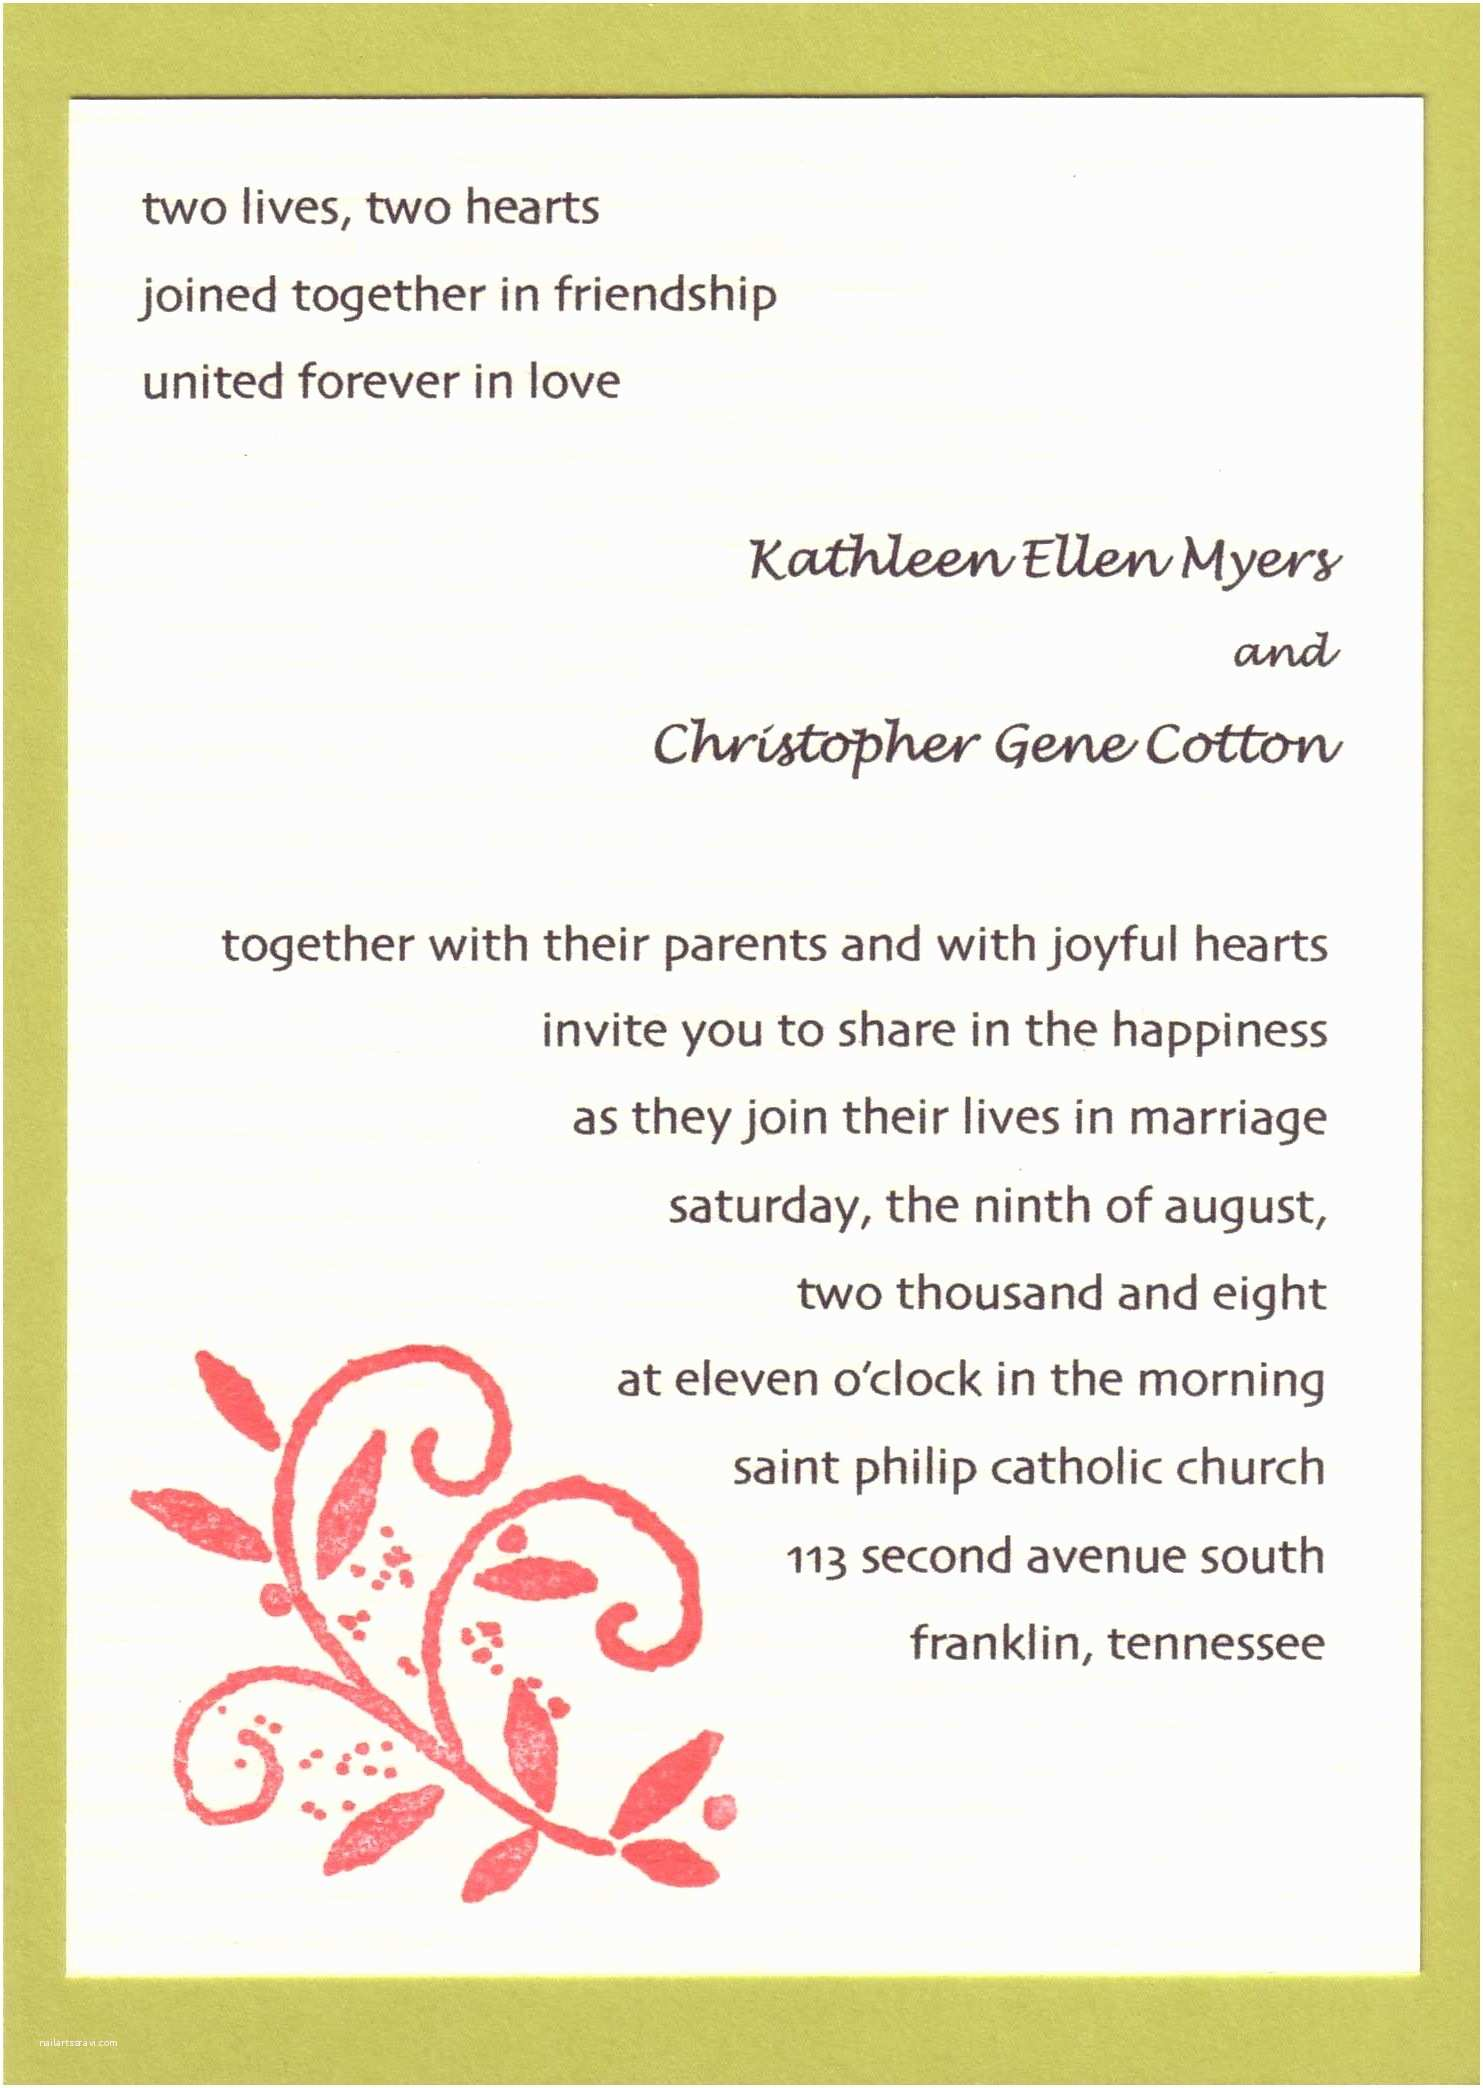 Wedding Invitation Sample Wording Wedding Invitations Cards Wording Wedding Invitation